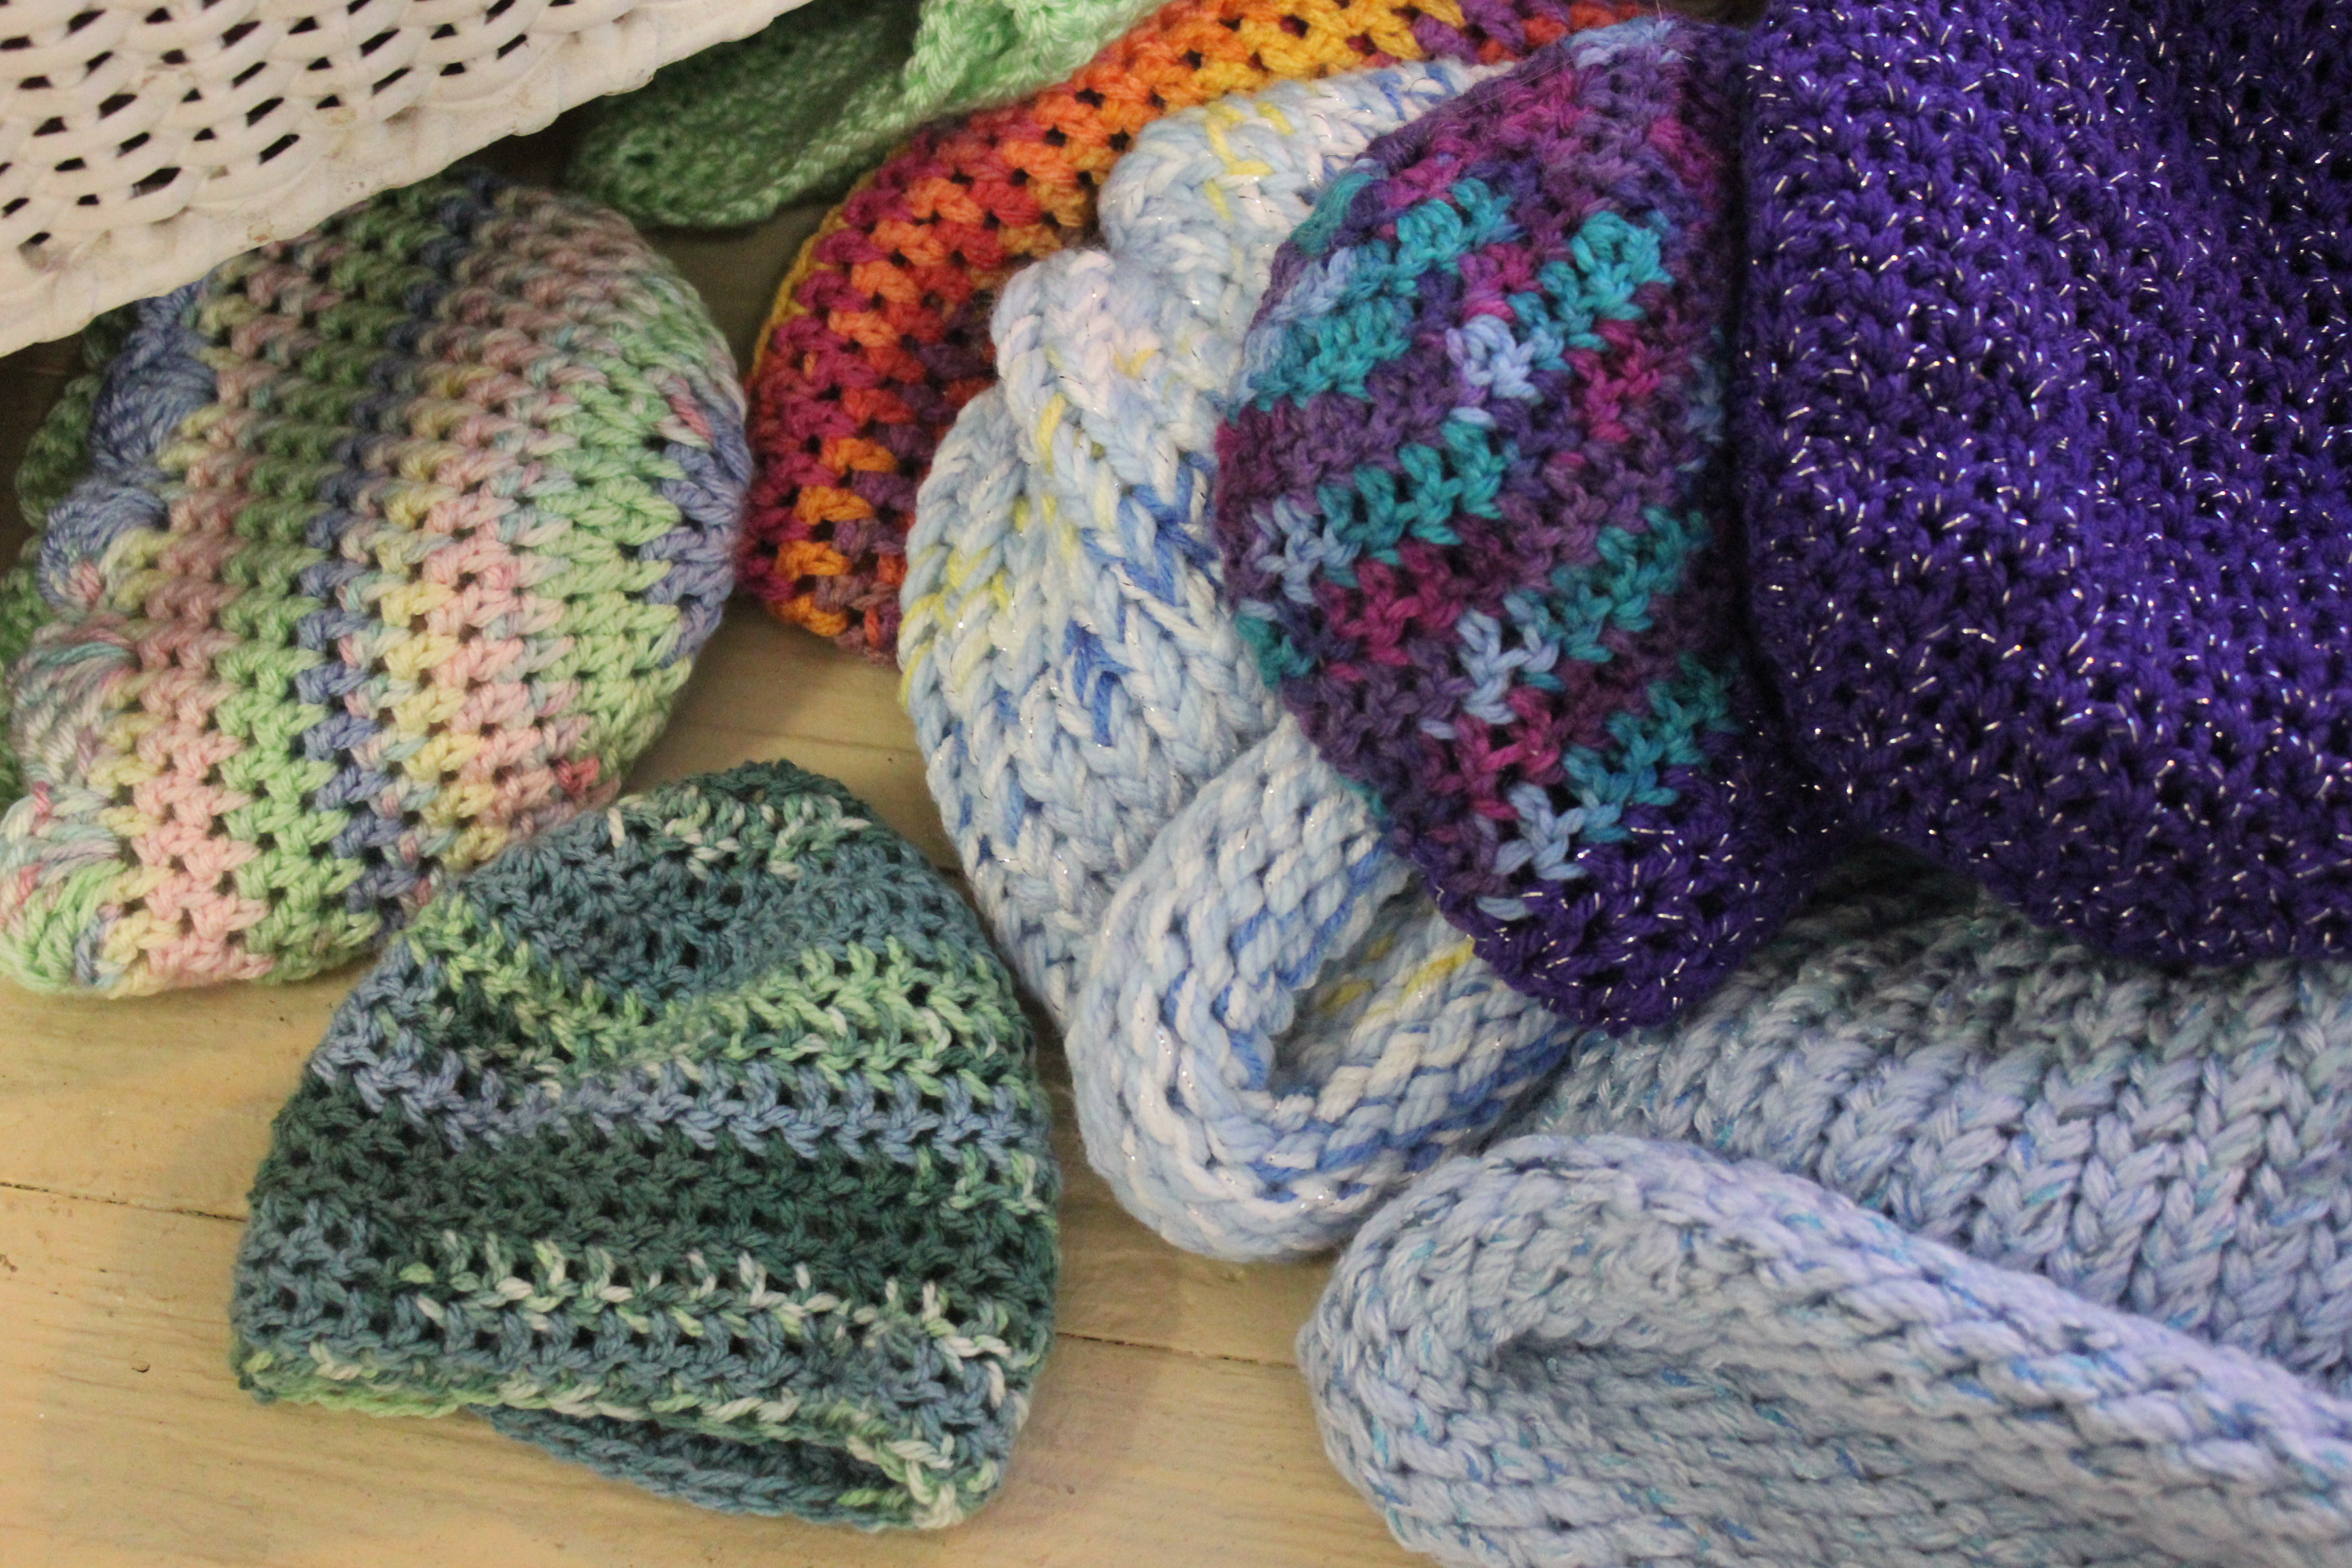 Knitting Scarves For The Homeless : News south county page